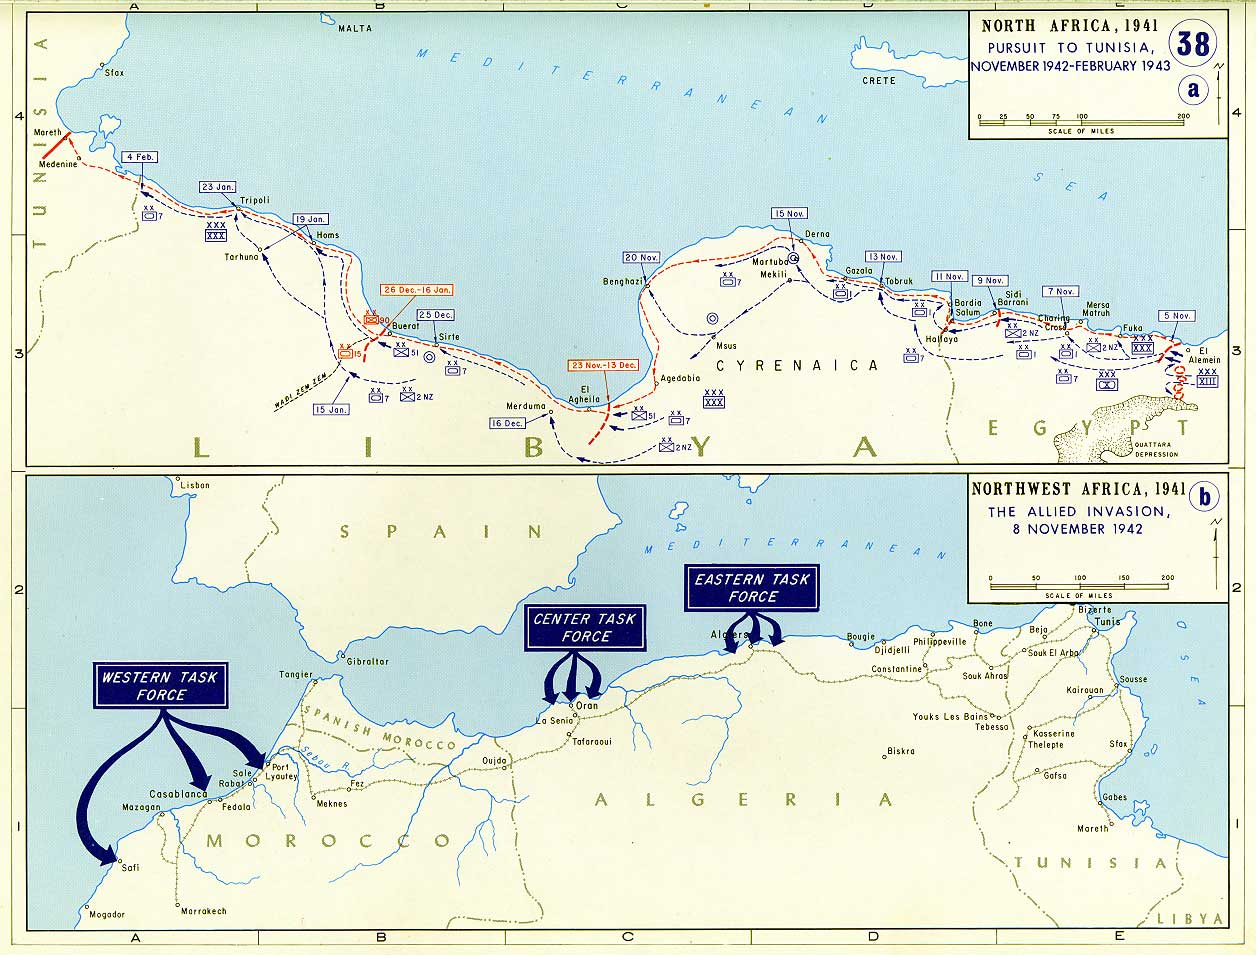 Map of Allied Invasion of Northwest Africa (1942 1943)